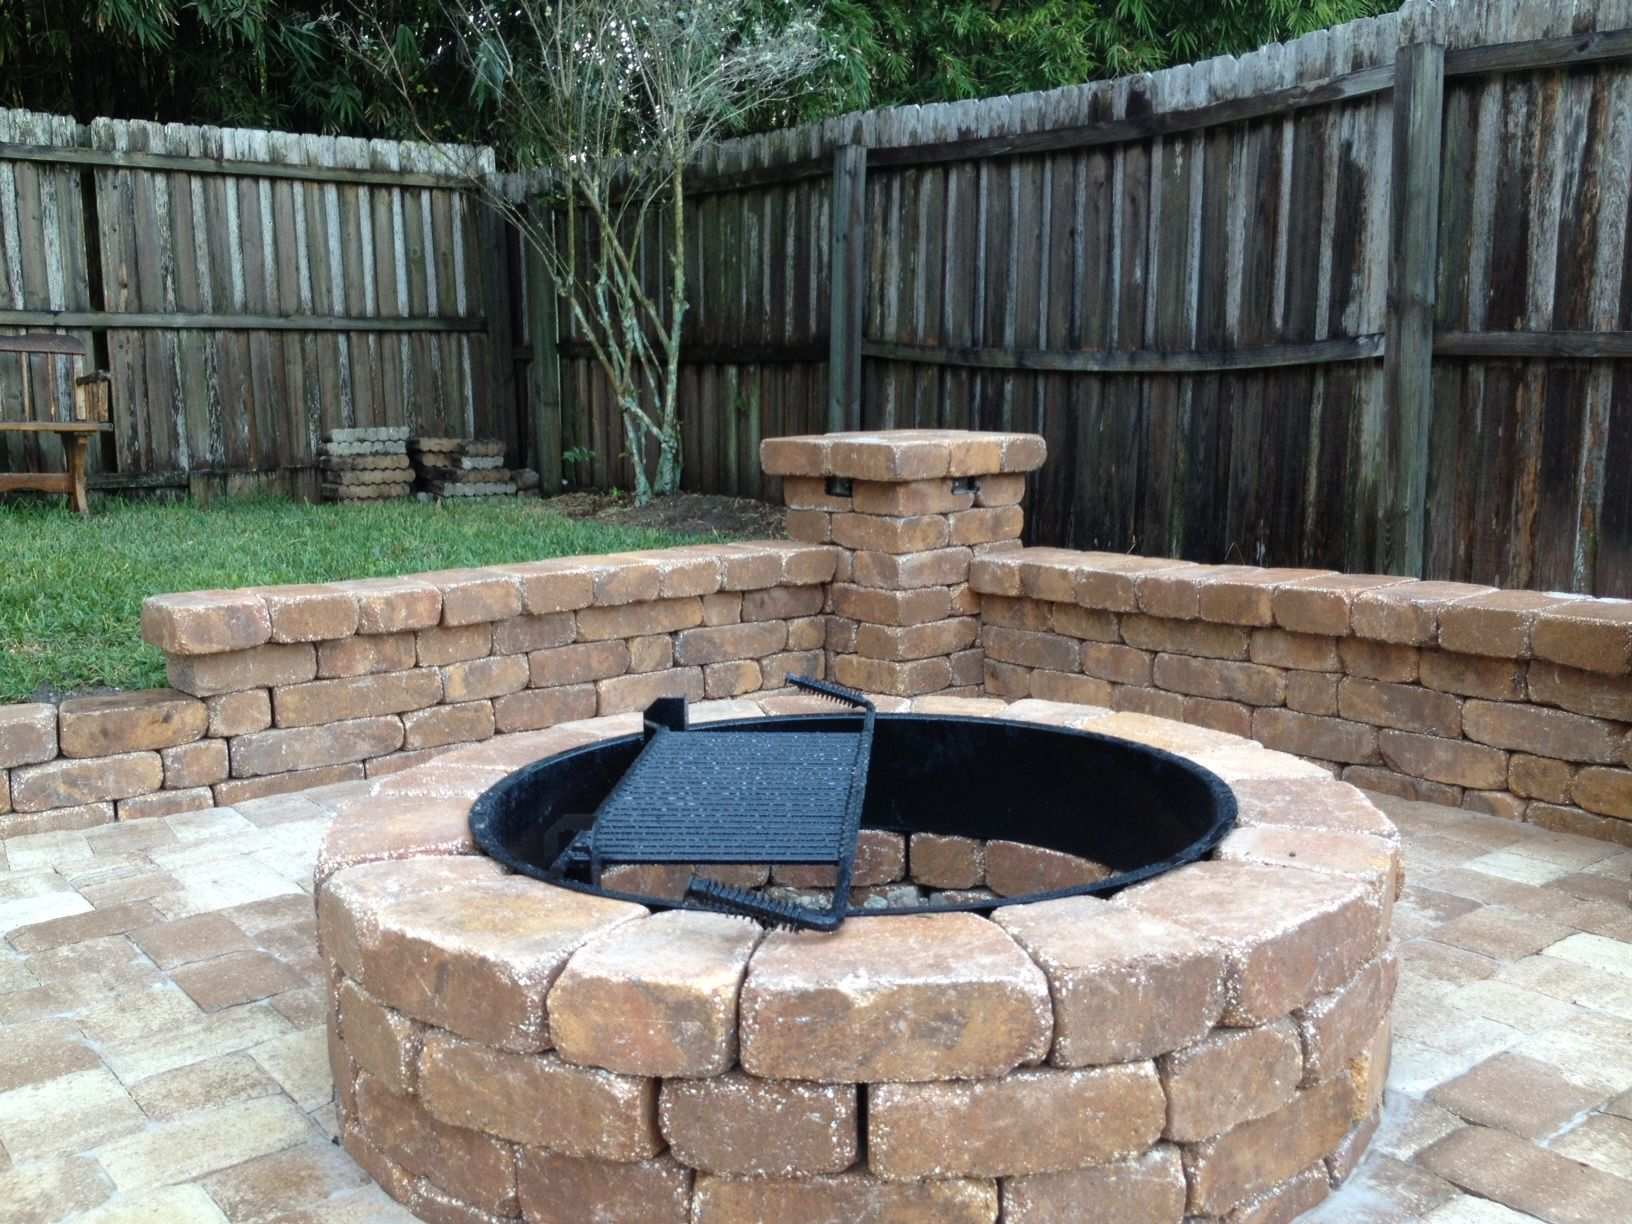 Outdoor Retreat Area With Fire Pit Small Bench Wall